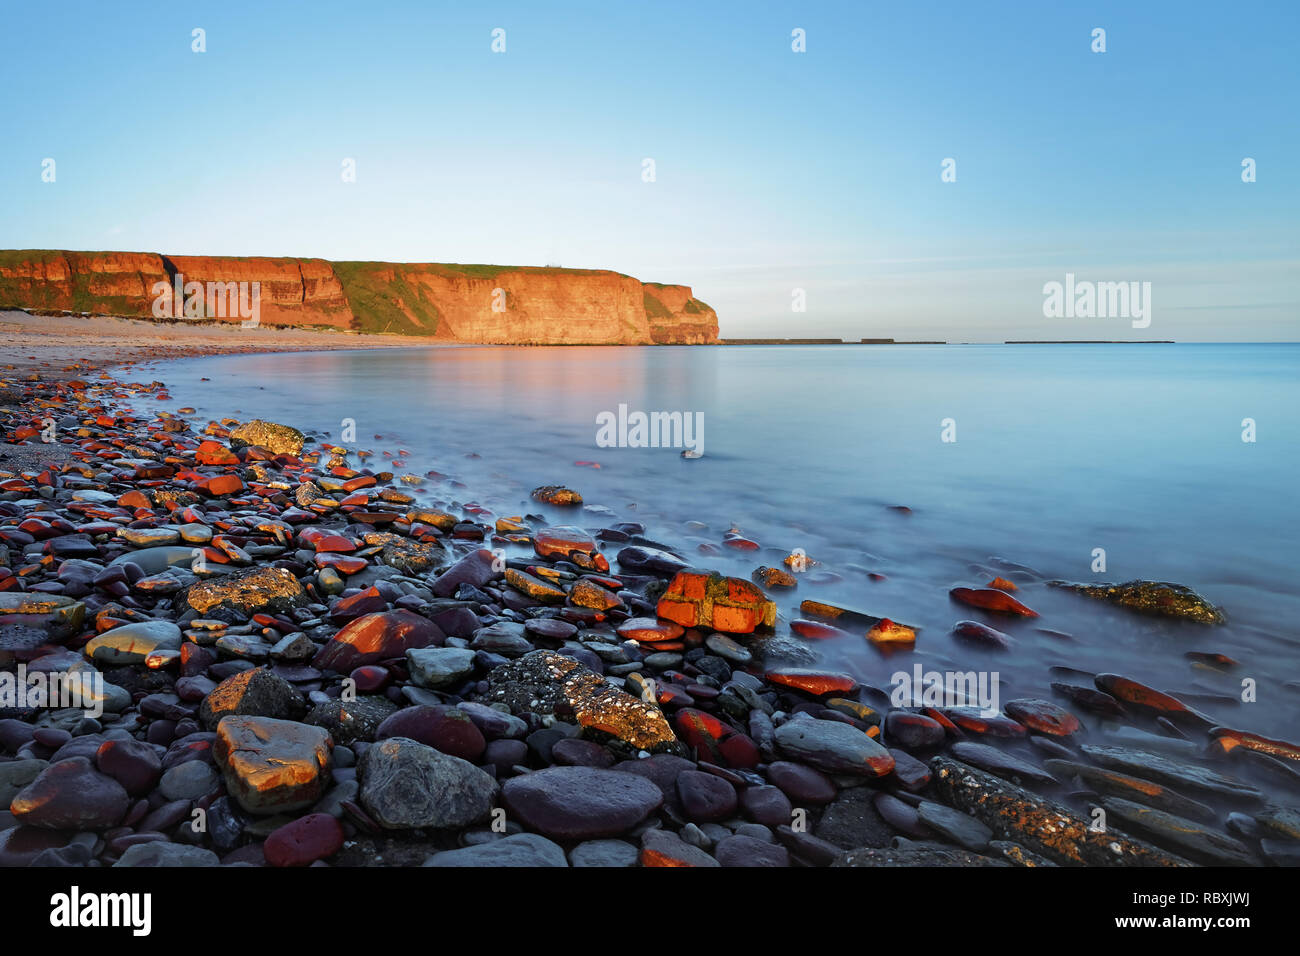 Lonely long beach with different sized stones shortly after sunrise, view to the steep bank, water movement in long exposure, depth effect - Location: - Stock Image